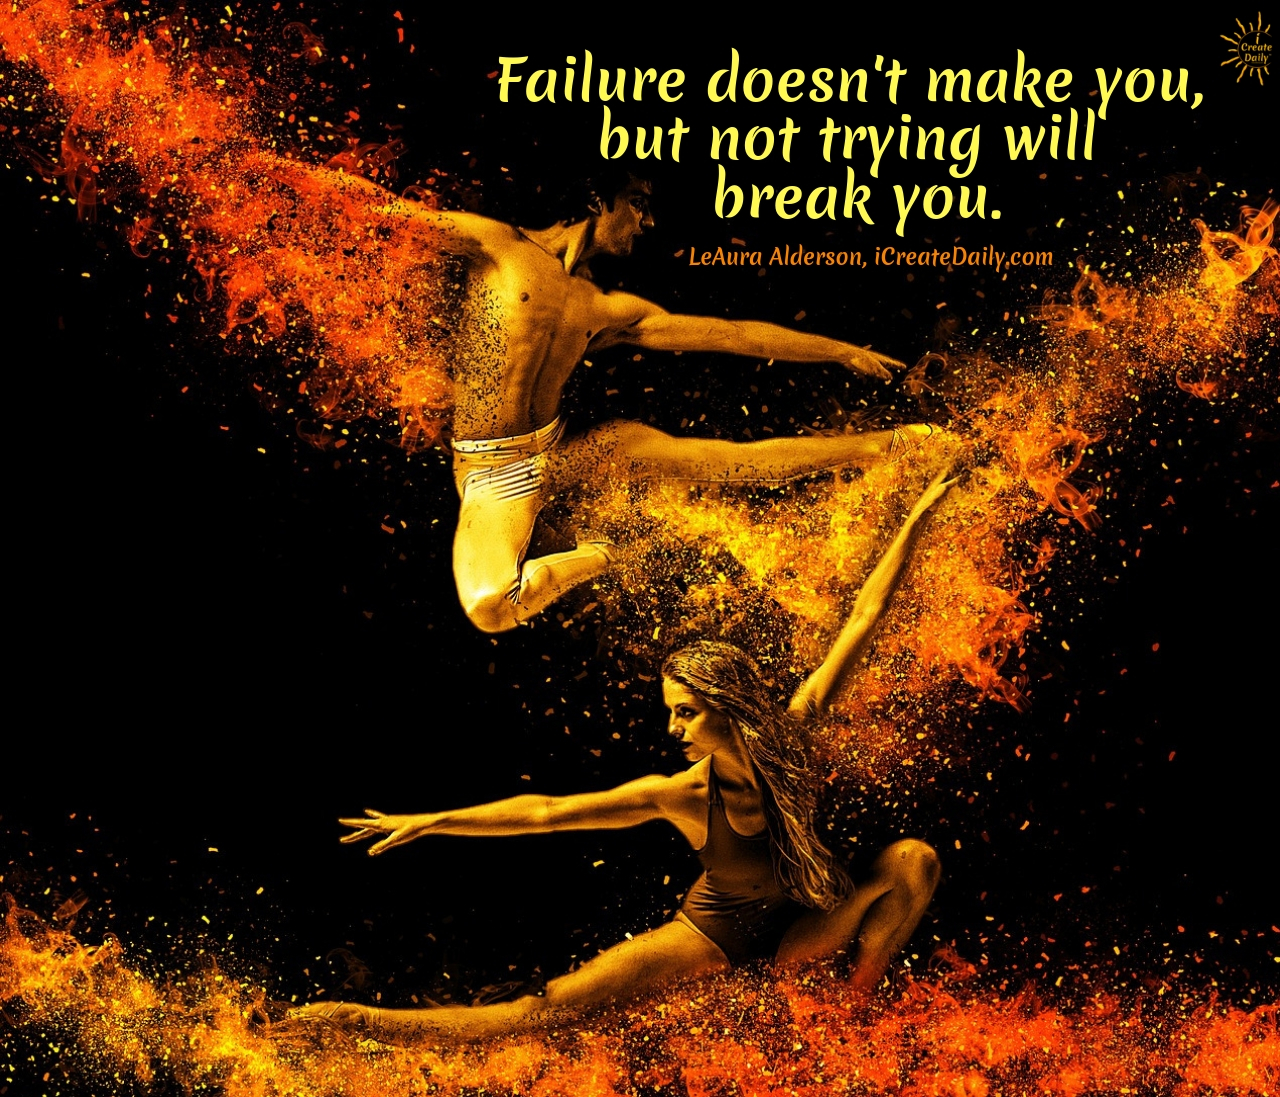 """FAILURE QUOTE:""""Failure doesn't make you, but not trying will break you.""""~LeAura Alderson, writer, editor, creator iCreateDaily.com®One of our partner sites is built up entirely around the concept of changing the starving artist meme into that of the abundant artist. They provide training and reasonably priced courses that help creators—especially visual artists—do just that. They even have a membership community with benefits."""